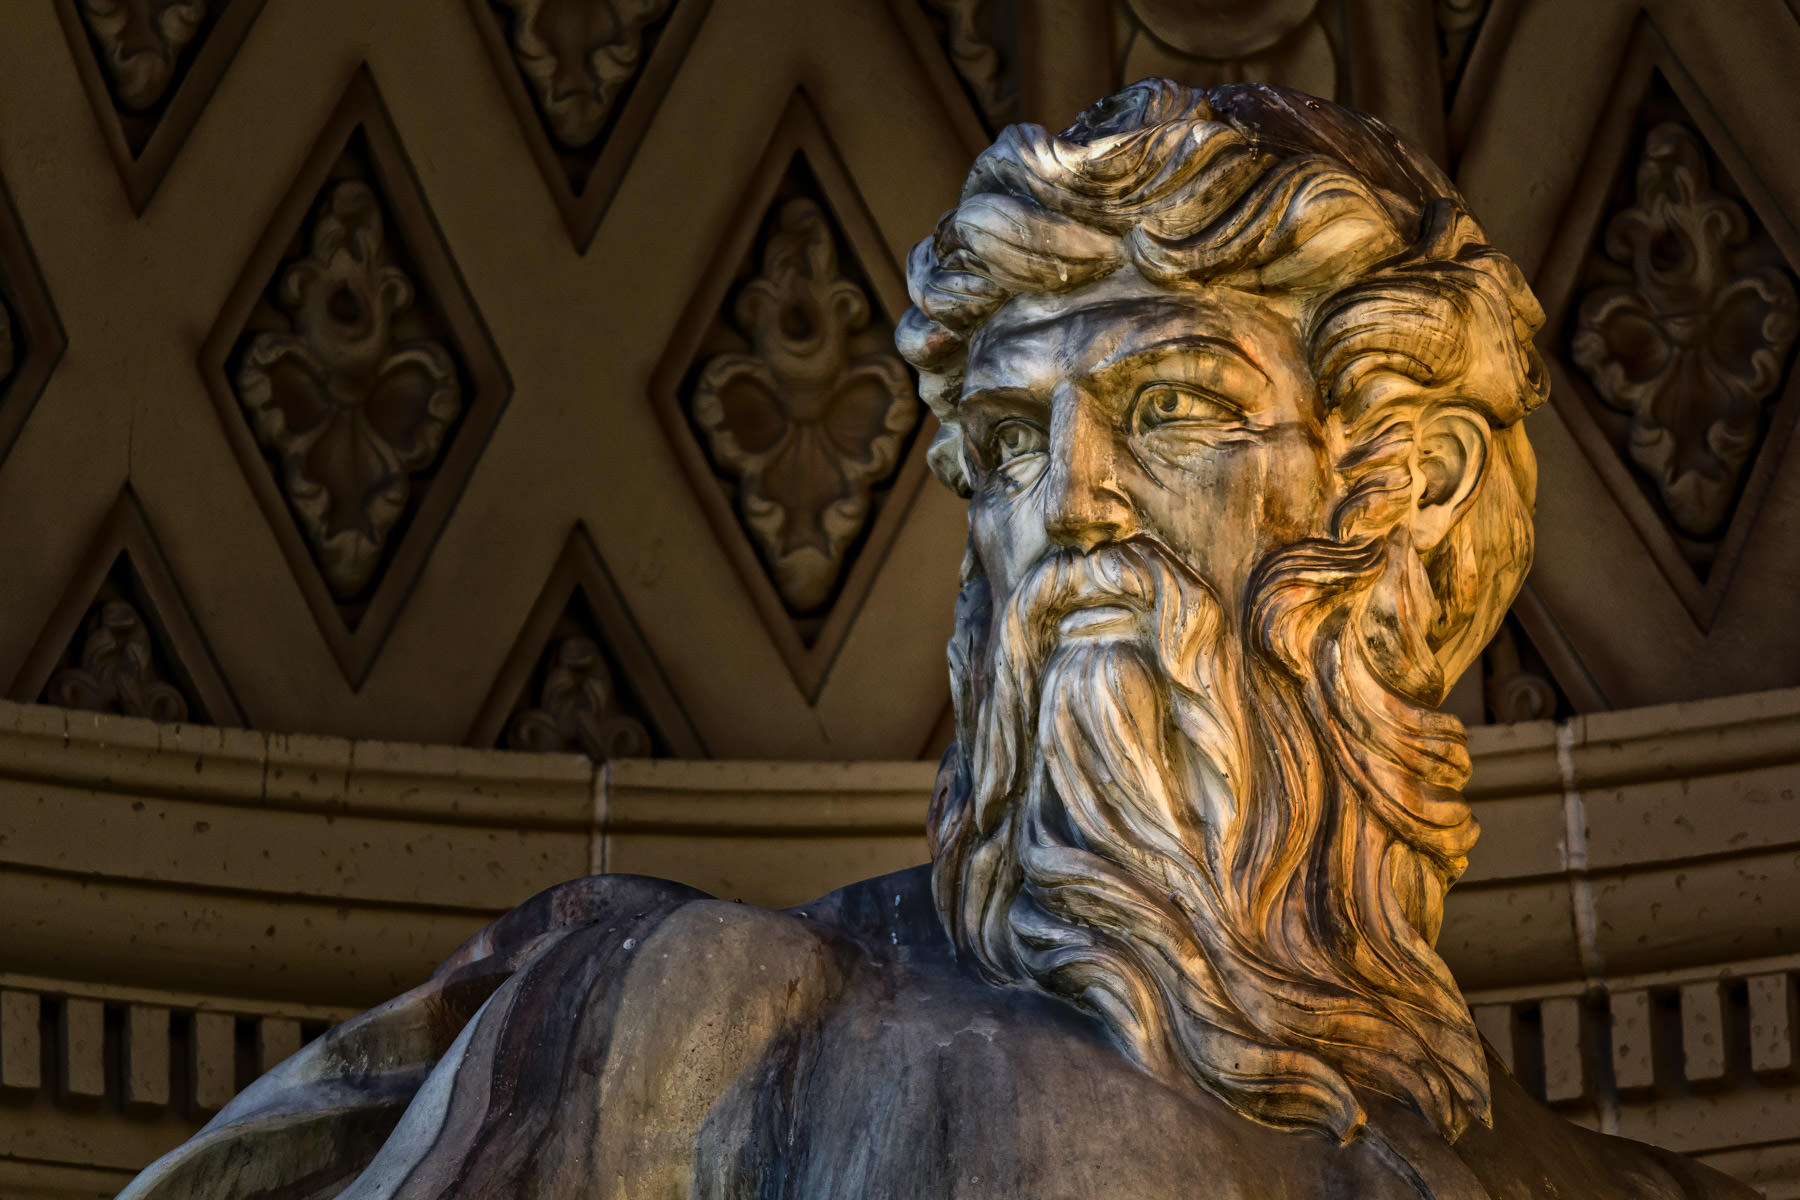 Detail of a statue of the Roman god of the sea, Neptune, part of a replica of Rome's Trevi Fountain at Caesars Palace, Las Vegas.